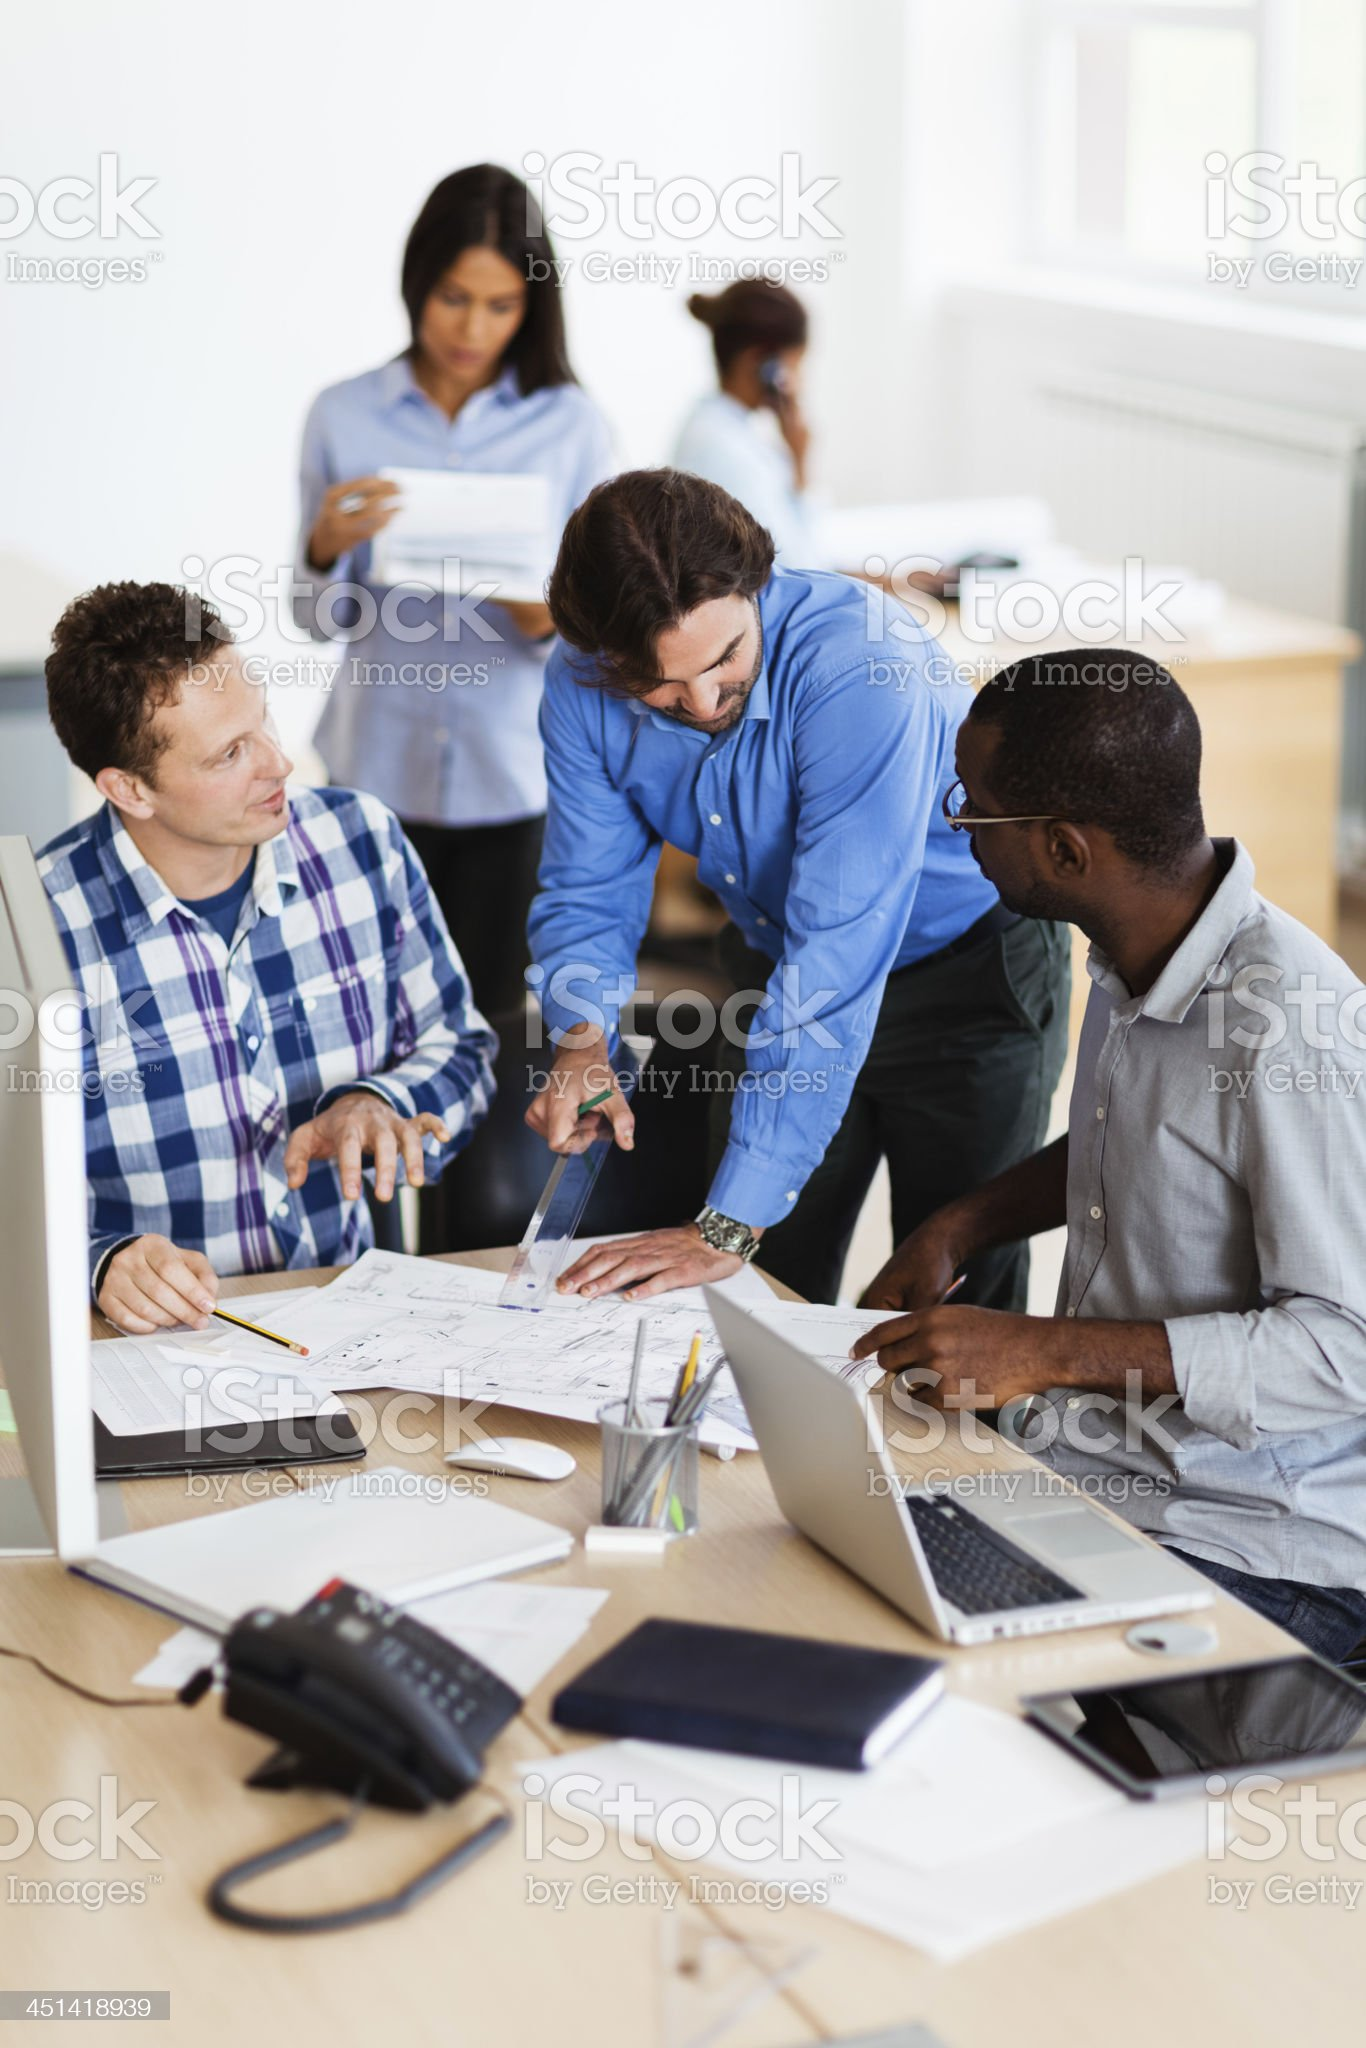 Group of designers working together royalty-free stock photo